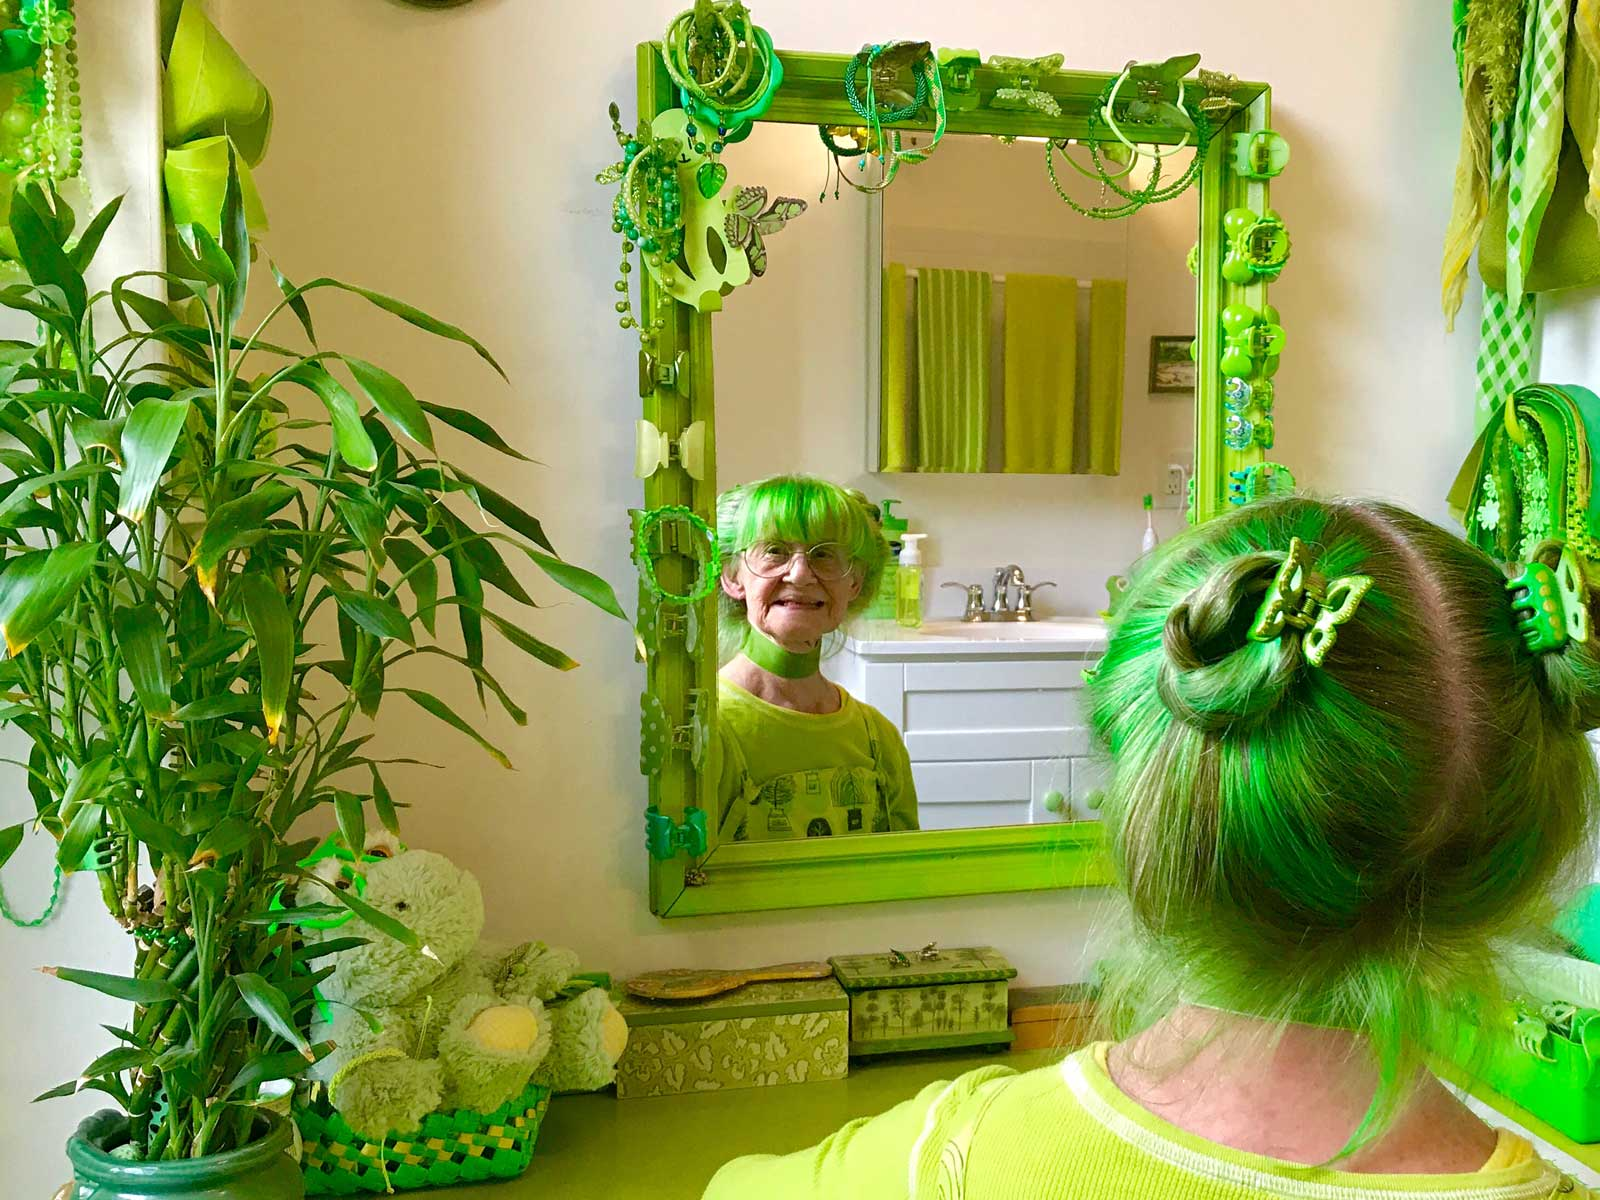 Green Lady of New York City